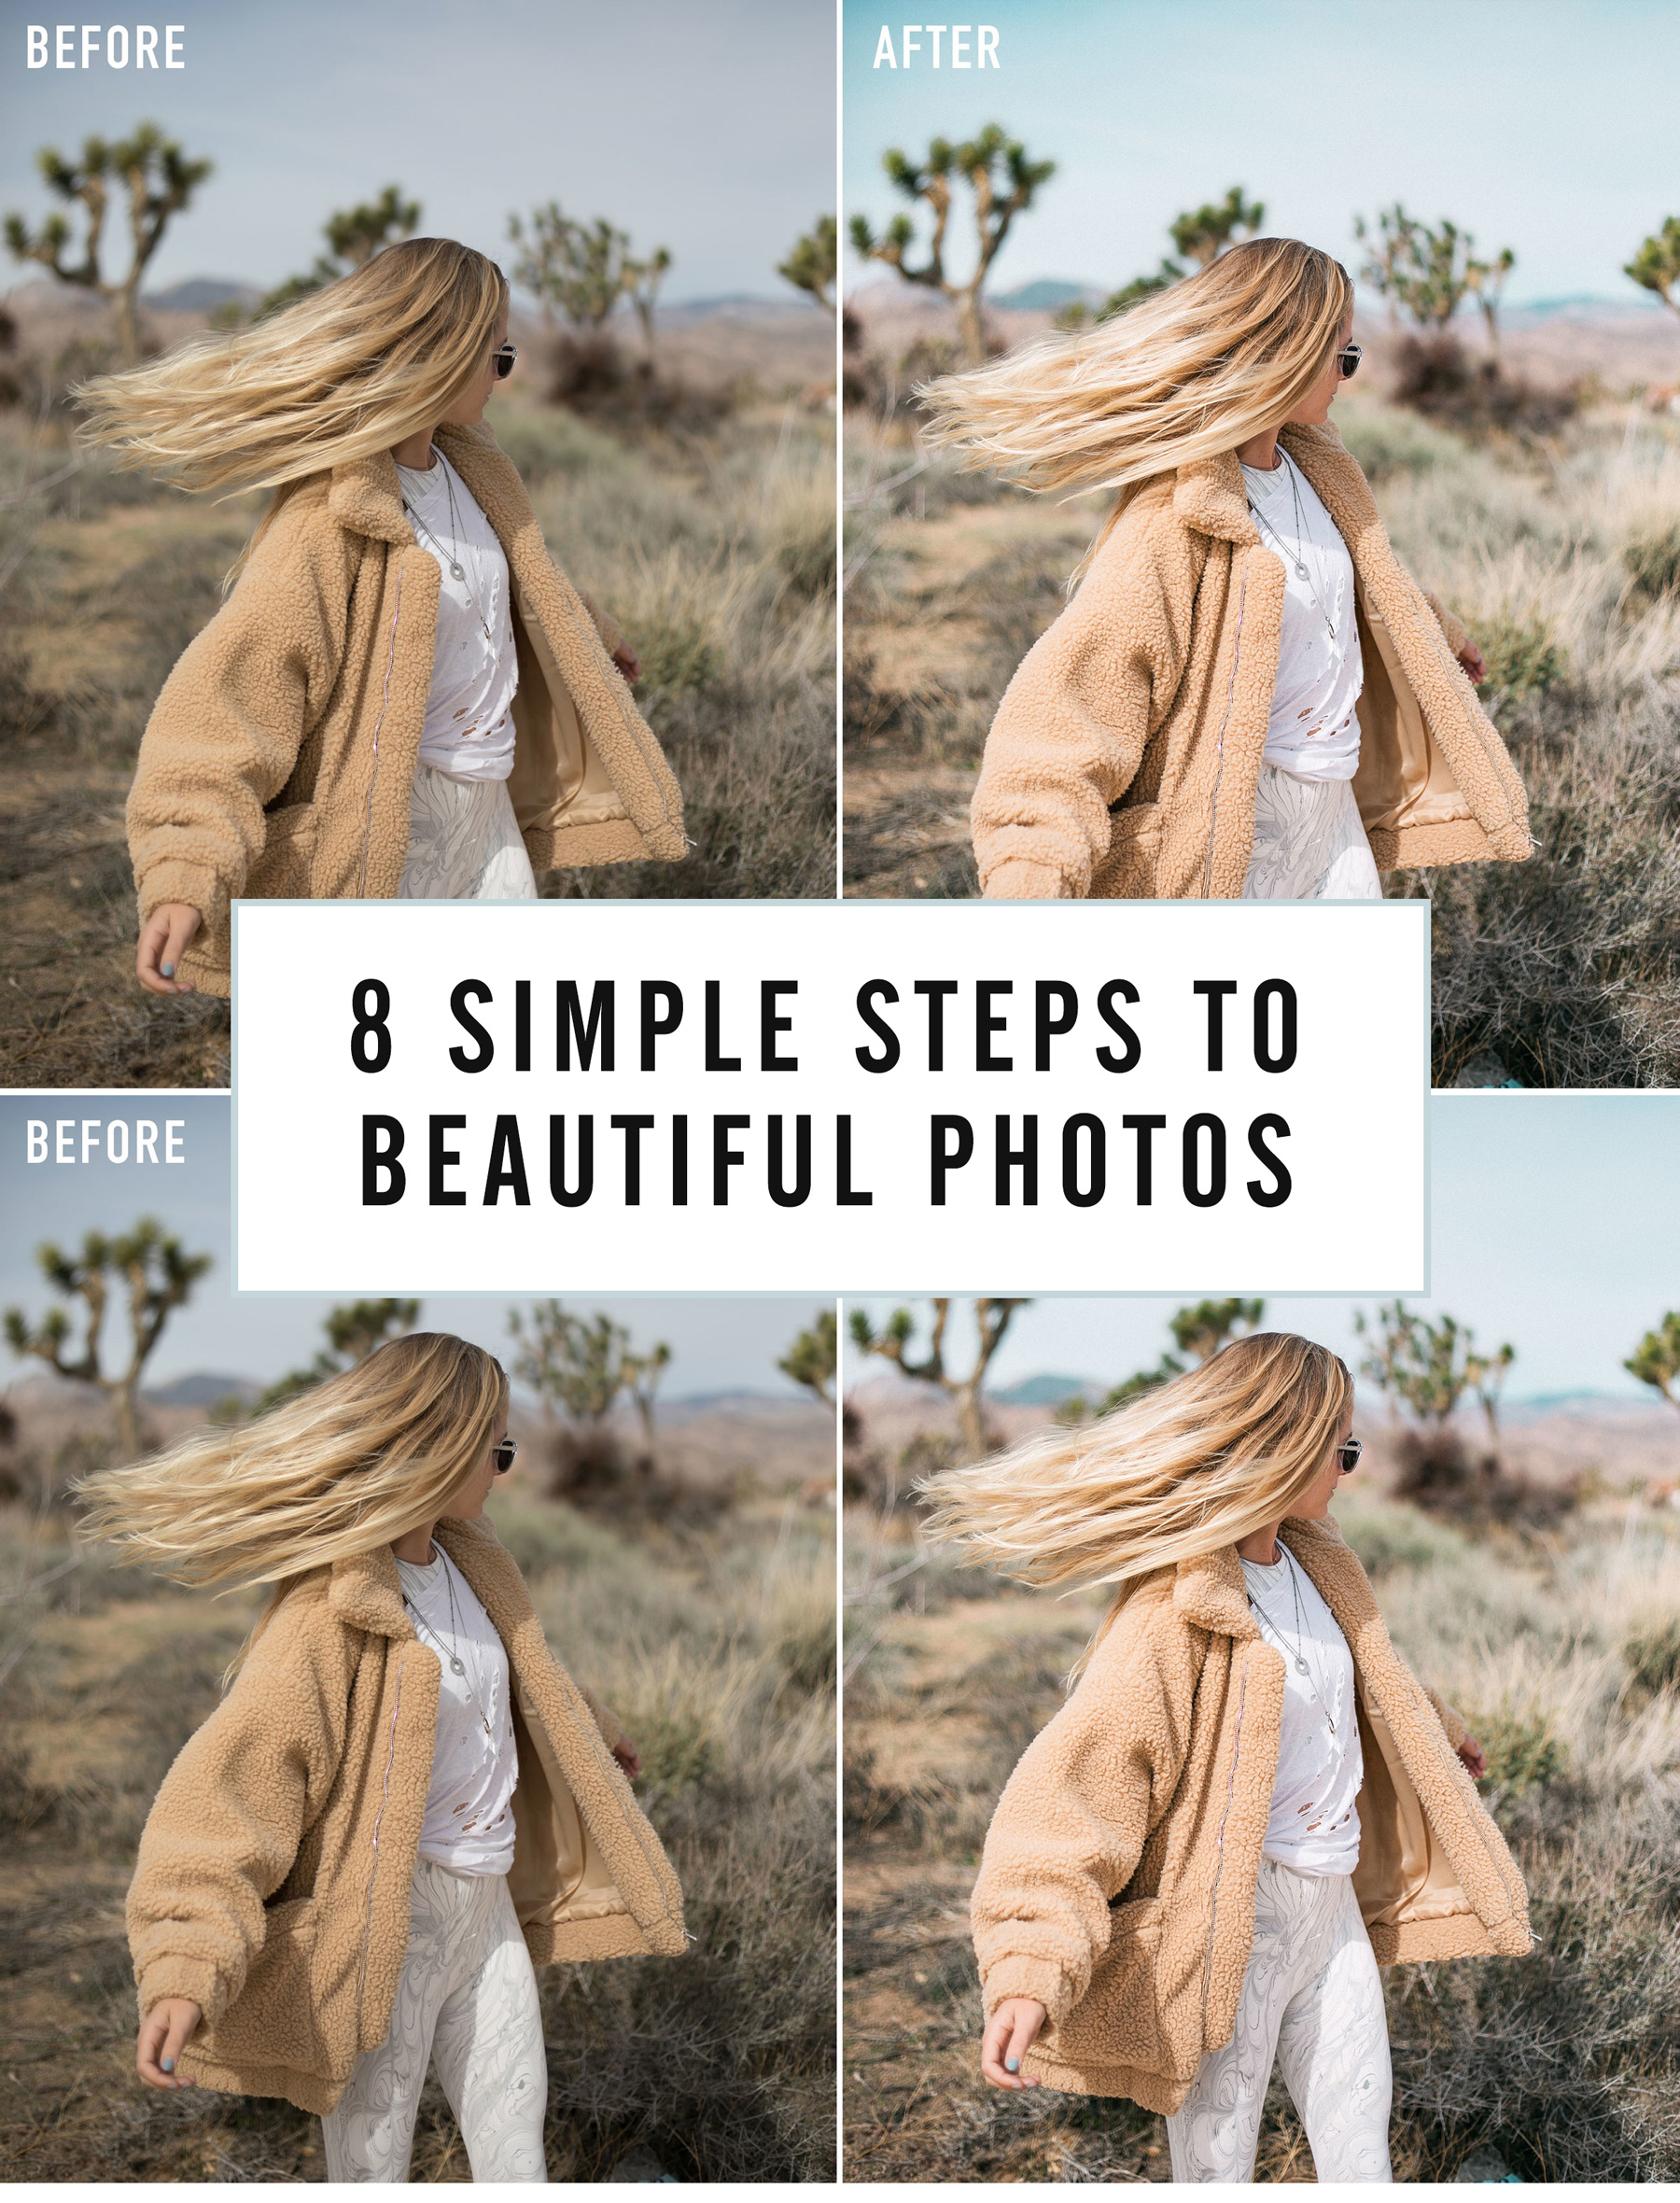 8 Simple Steps to Beautiful Photo Edits